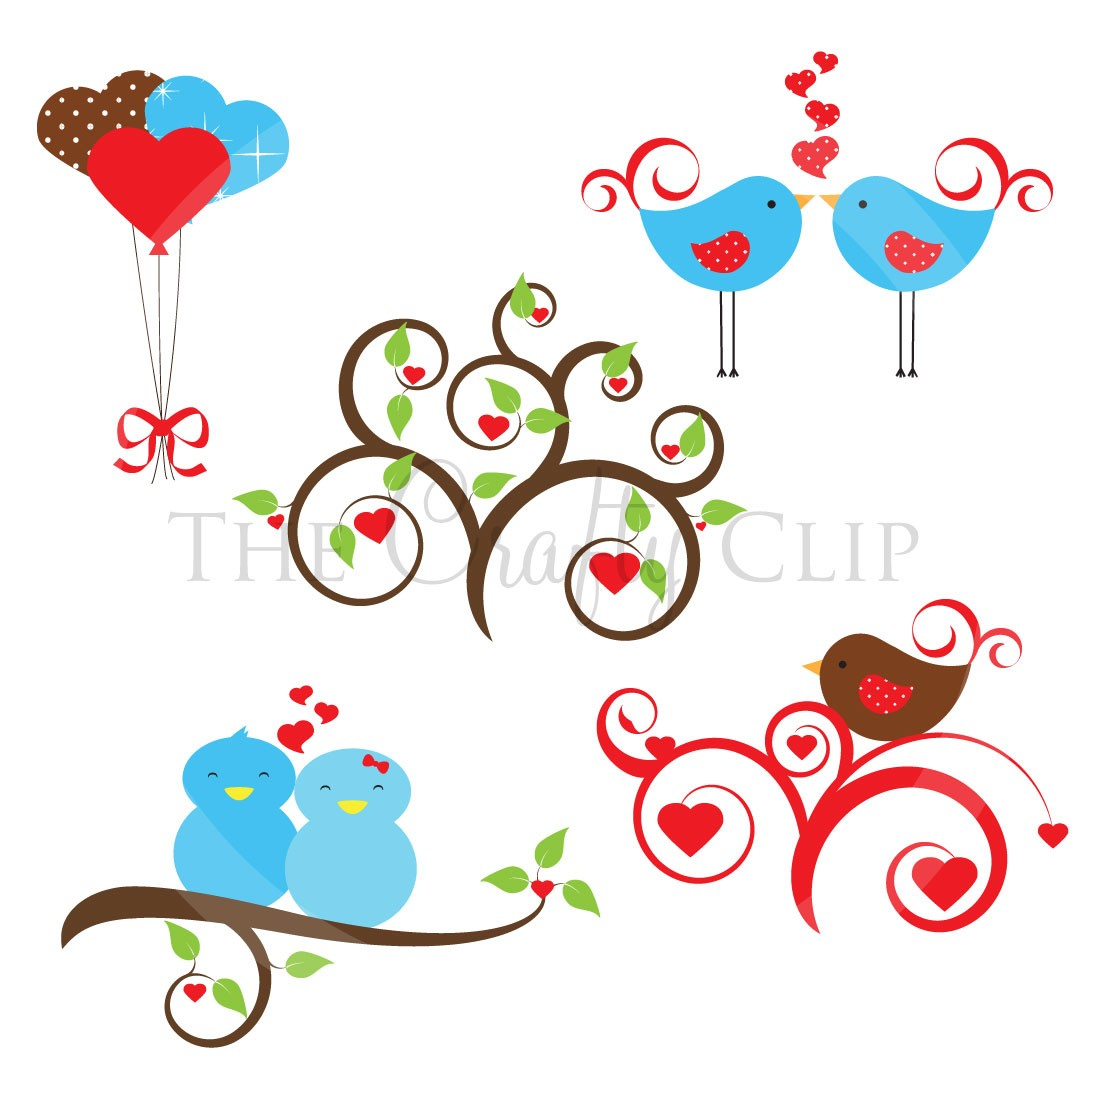 Love bird clip art - photo#18